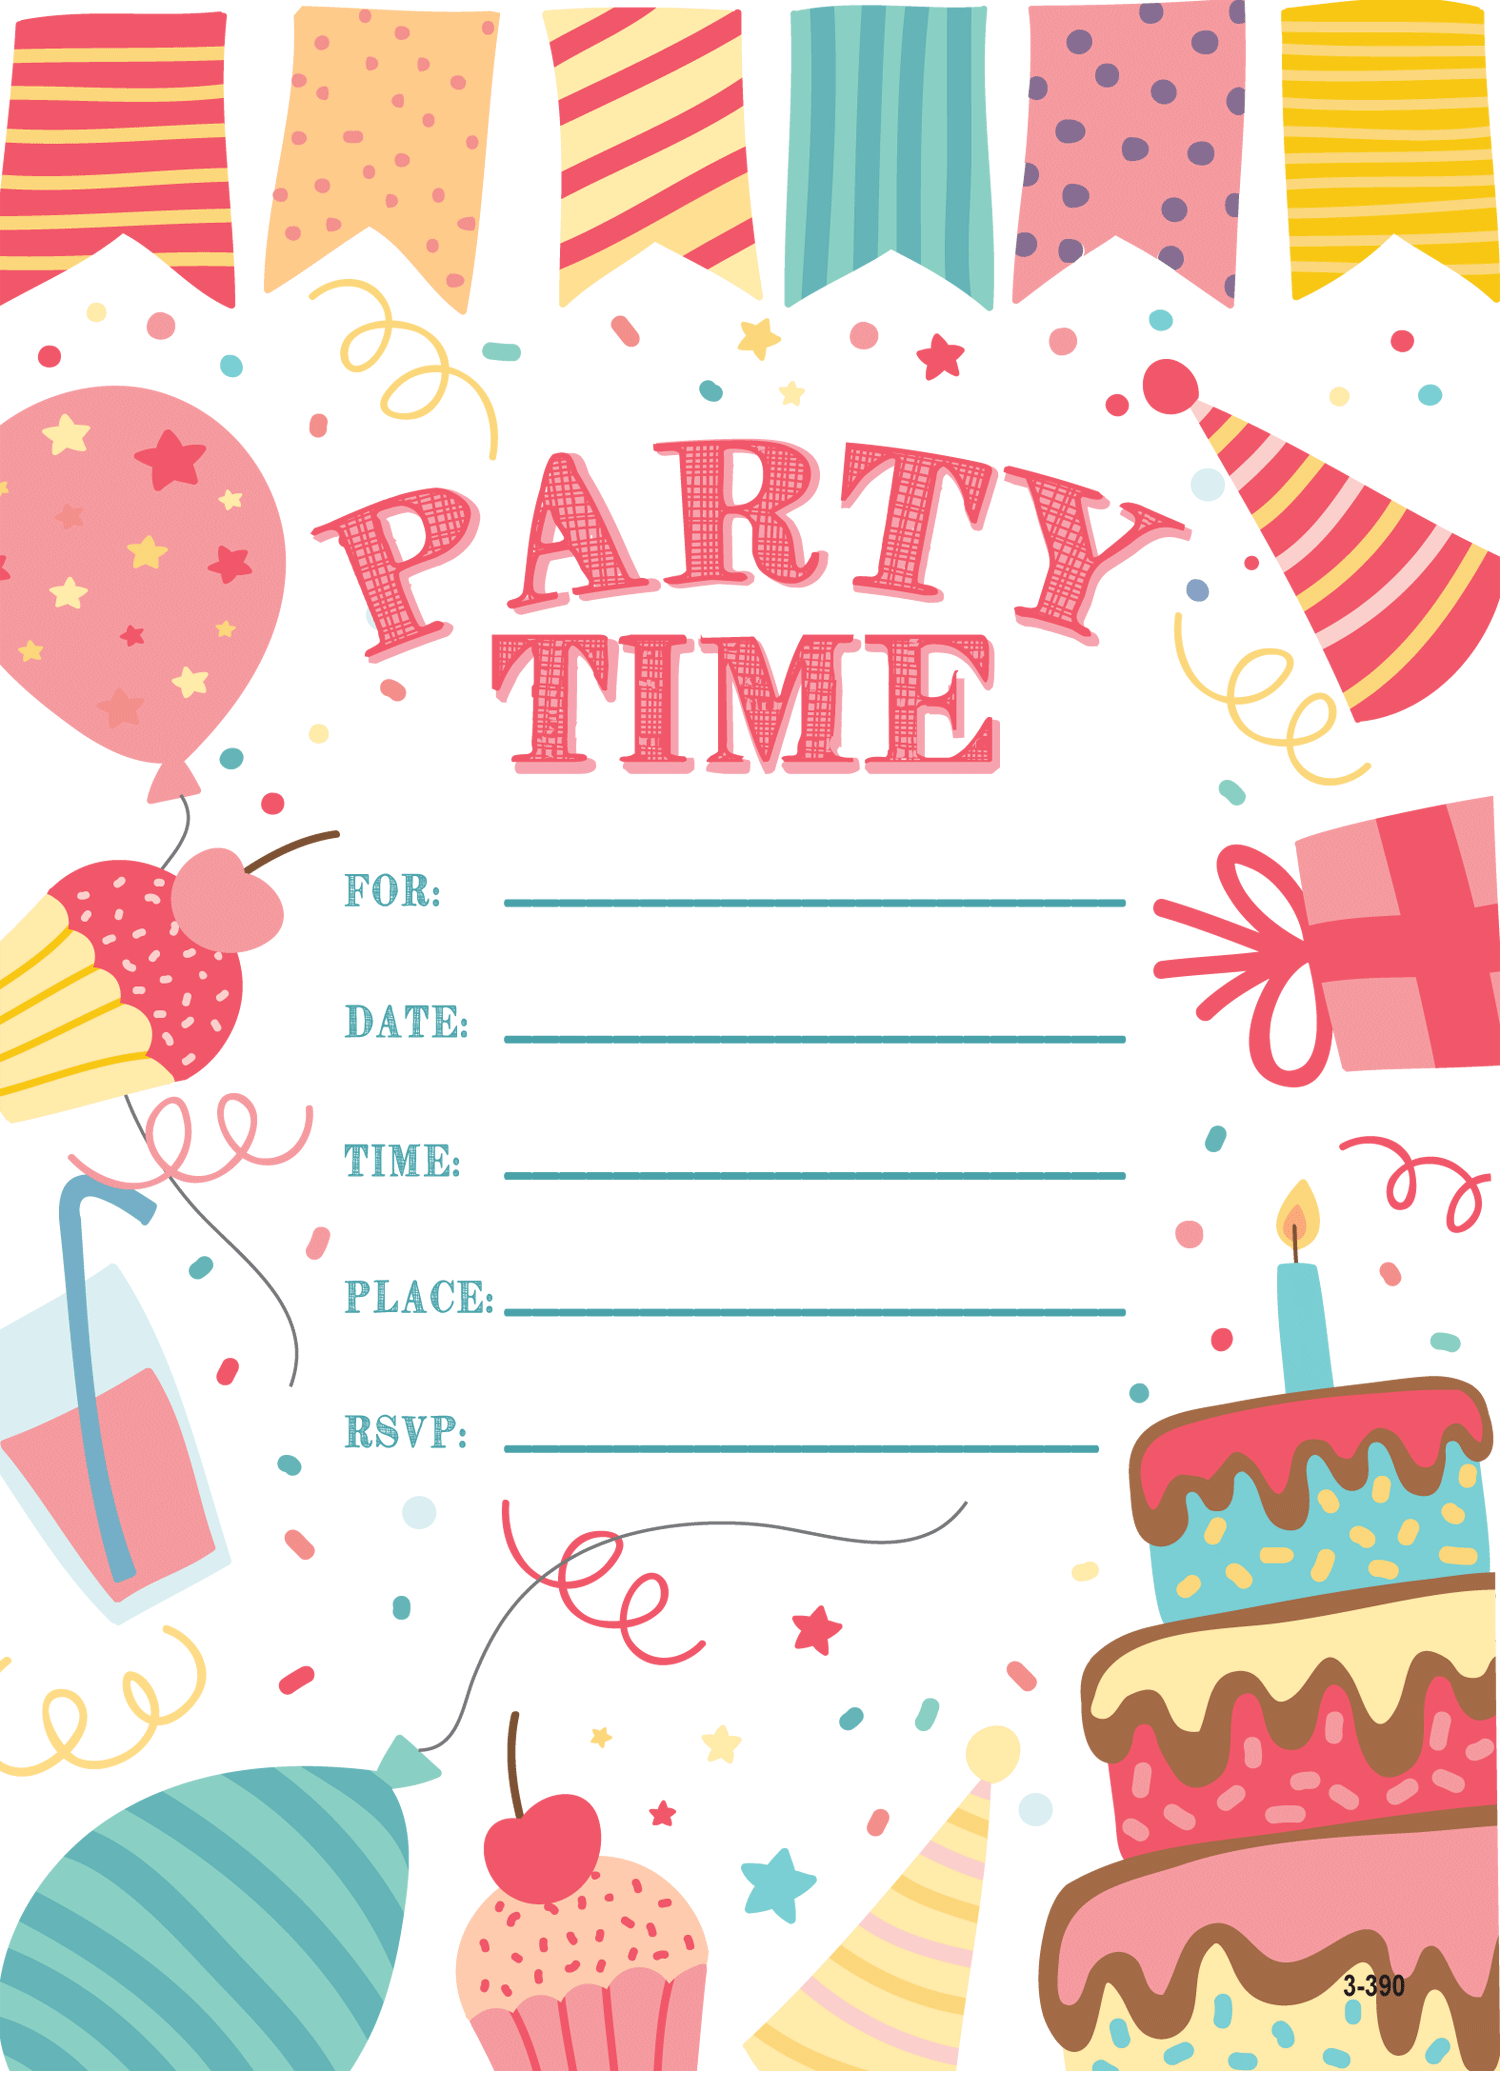 Stationery, Invitations, Party Needs & Paper For Kids: Childrens ...